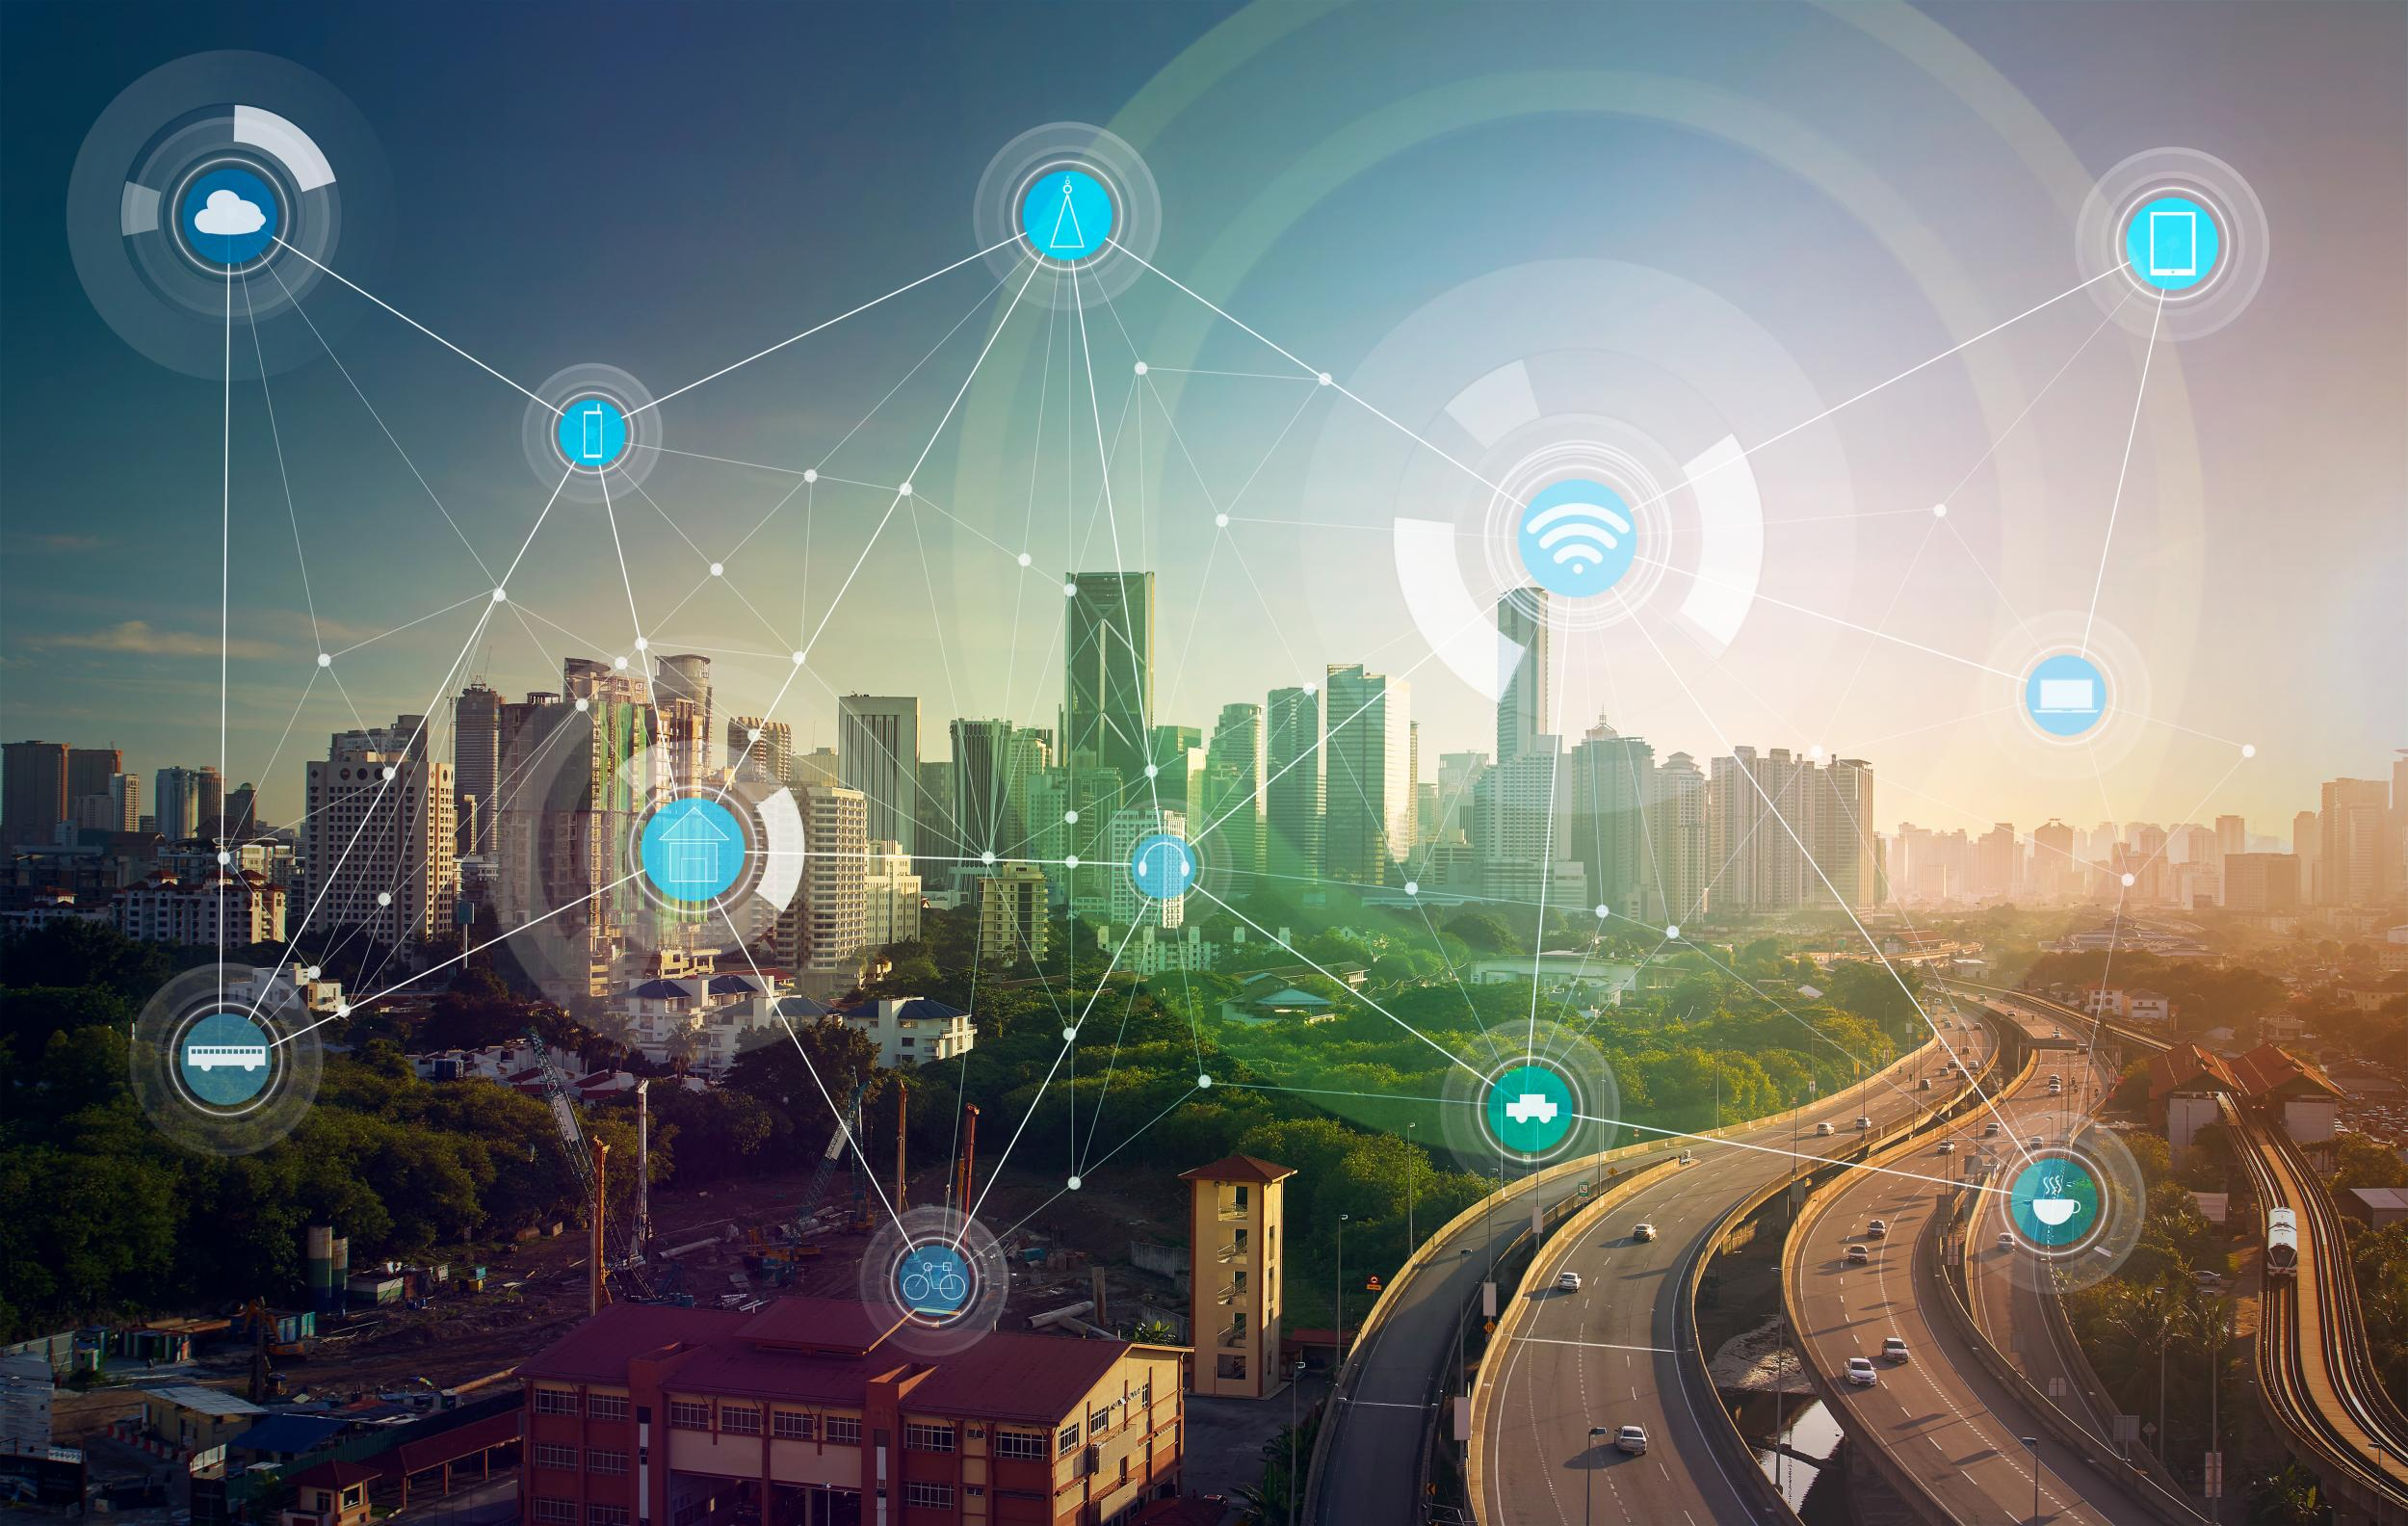 iot smart cities 0